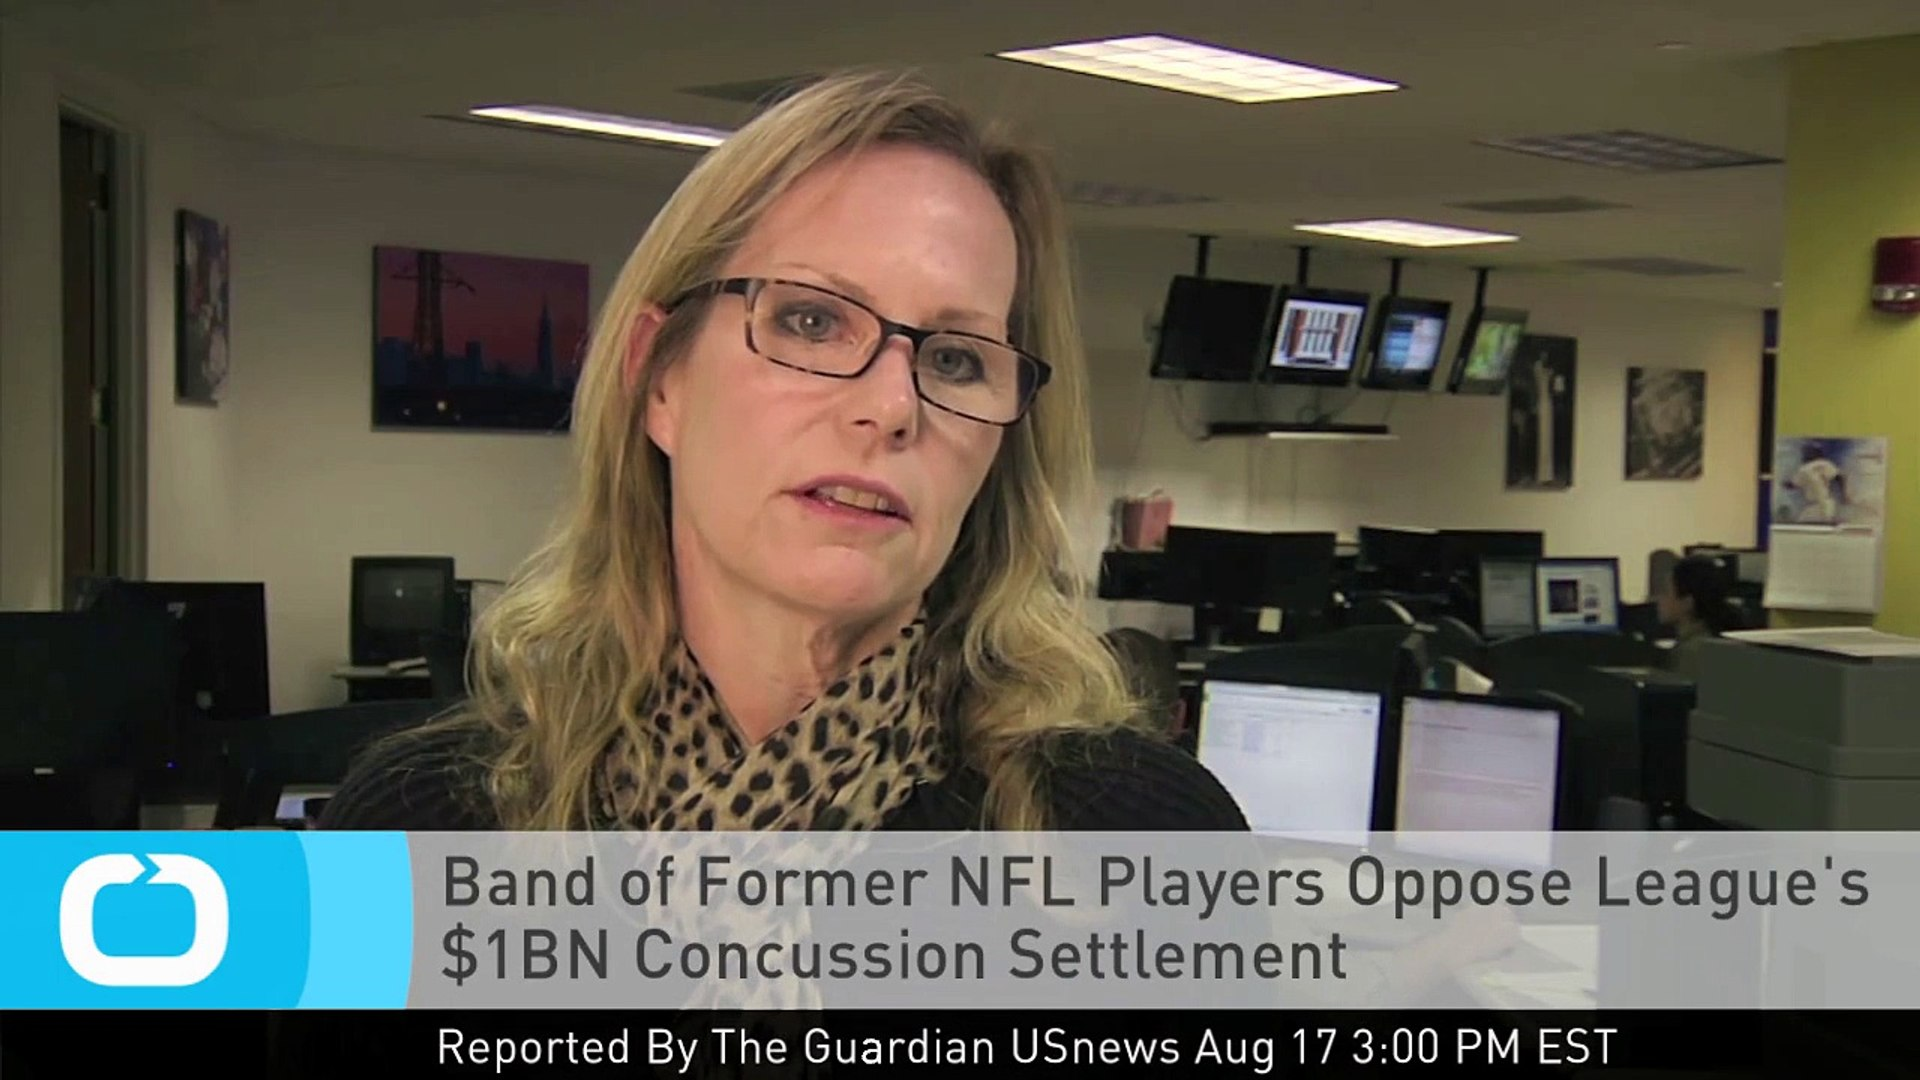 Band of Former NFL Players Oppose League's $1BN Concussion Settlement